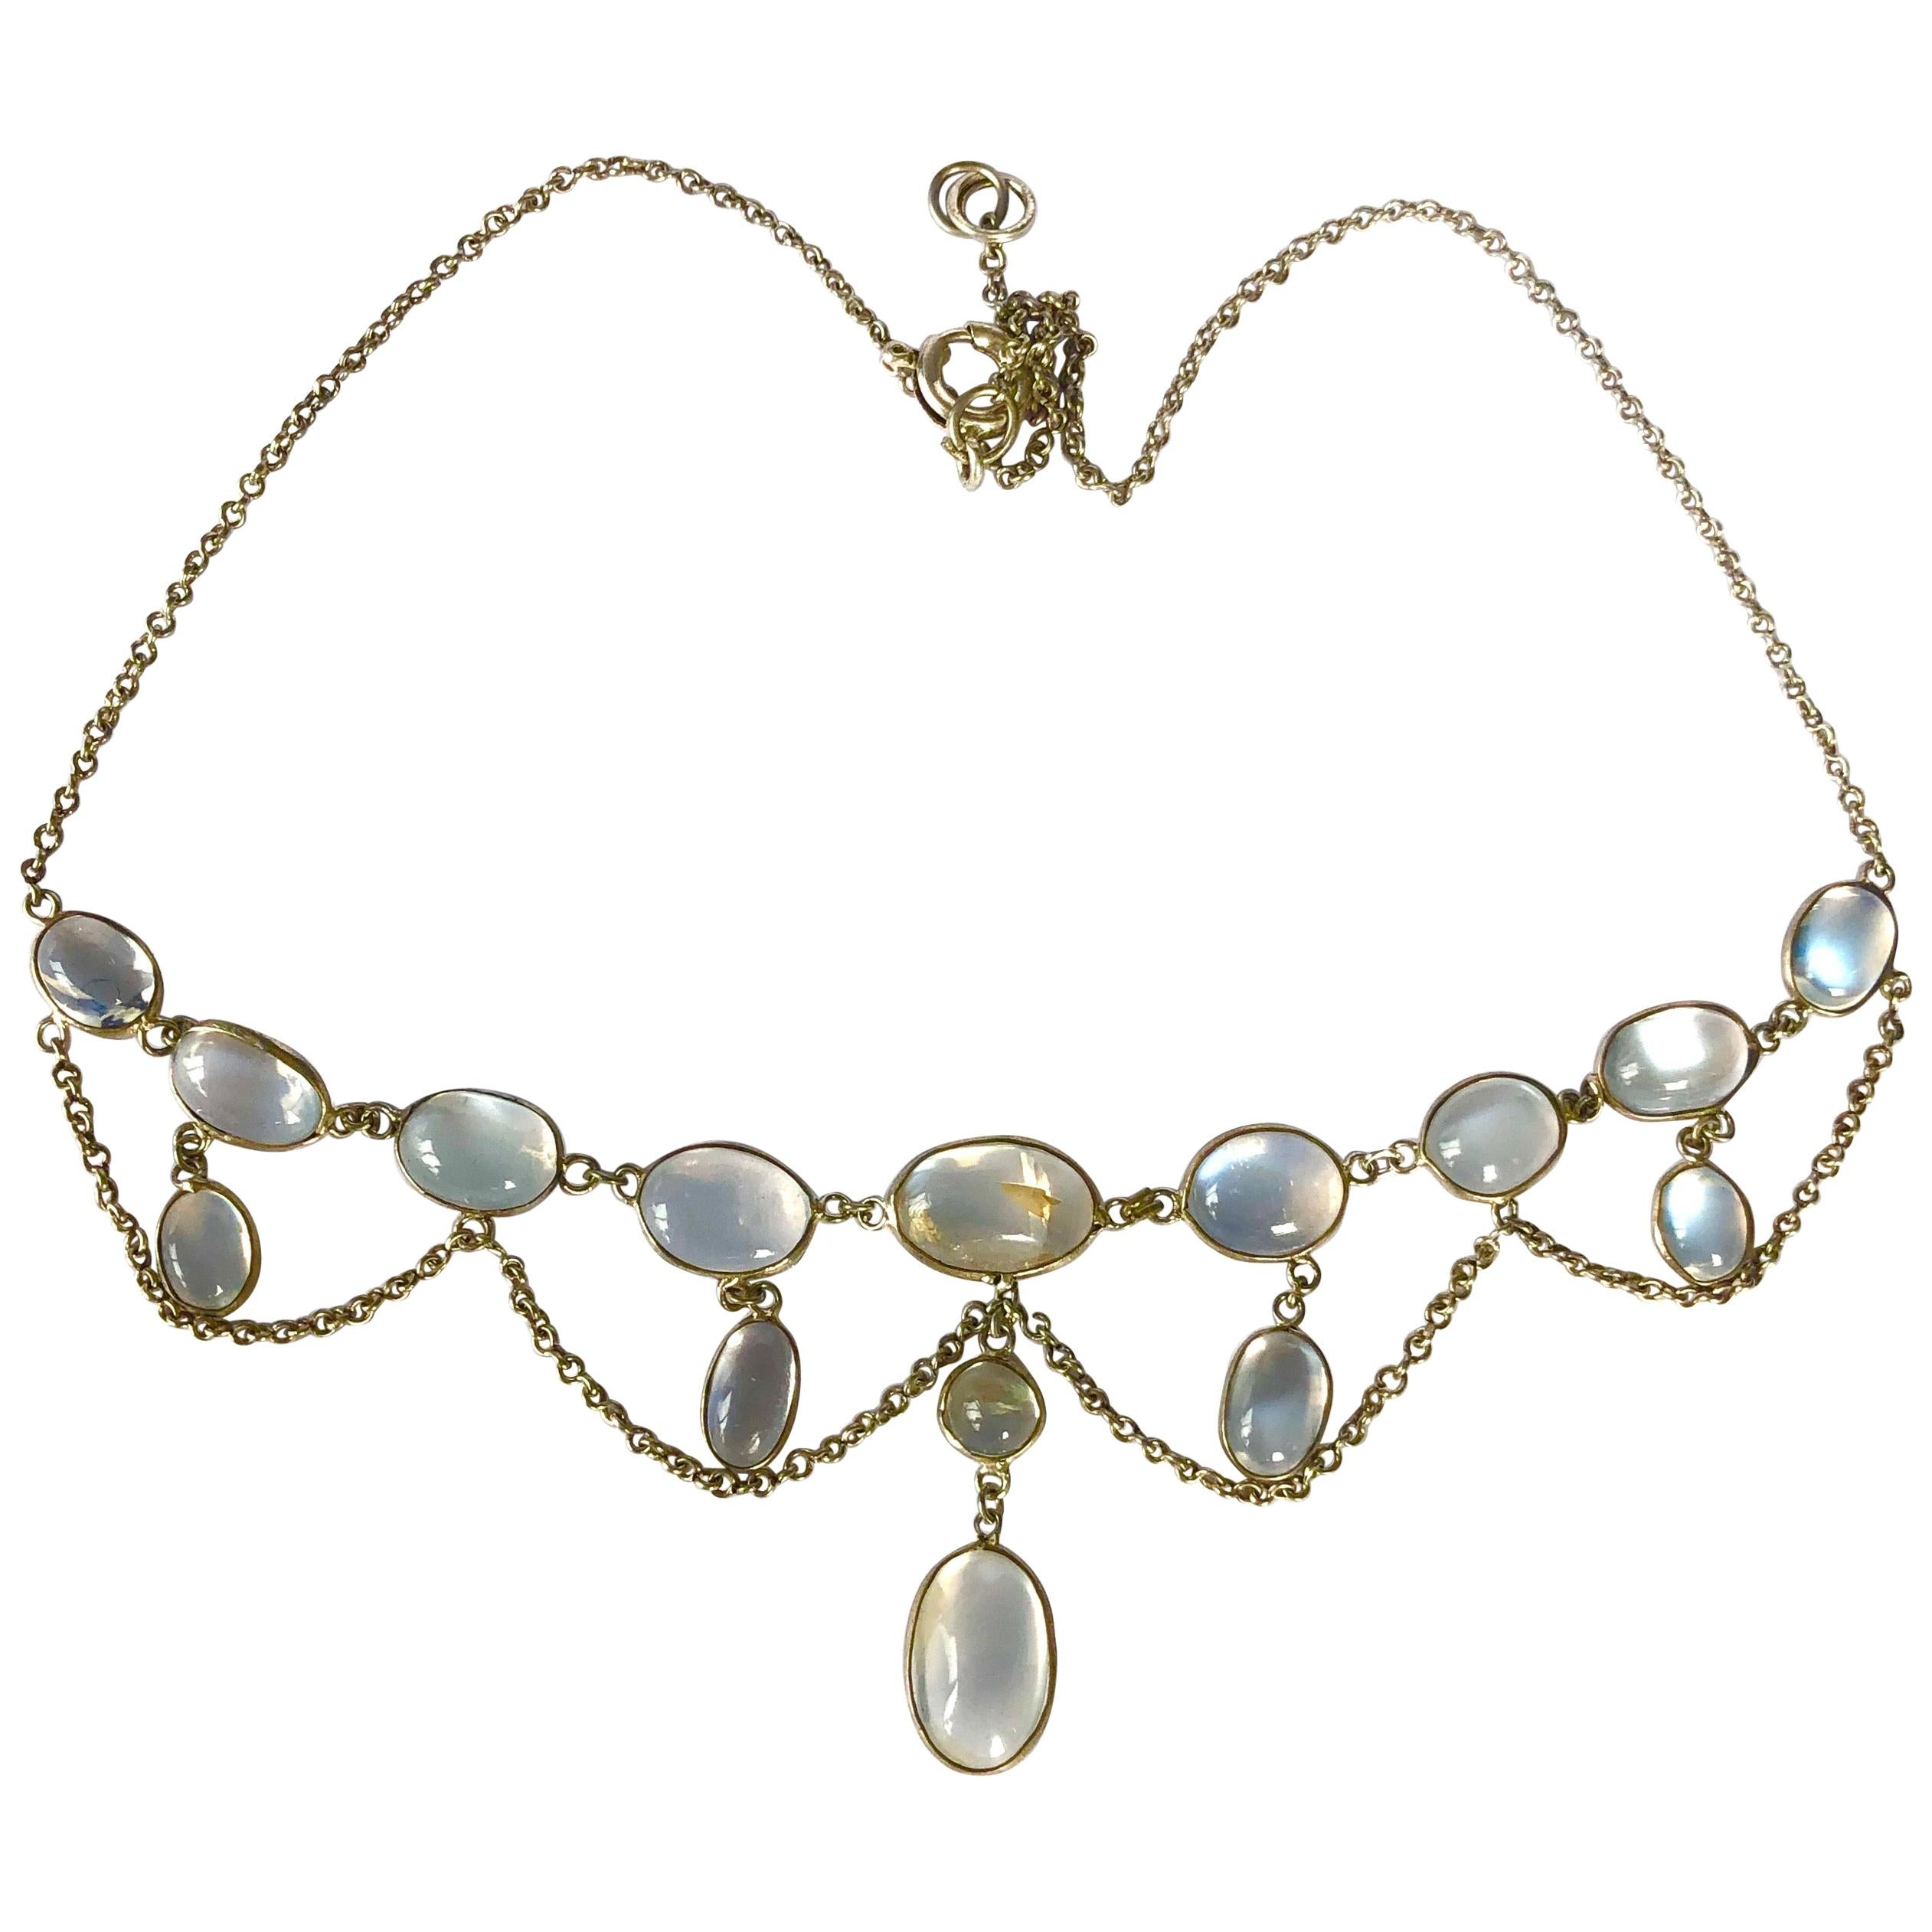 Edwardian Moonstone and Silver Festoon Necklace